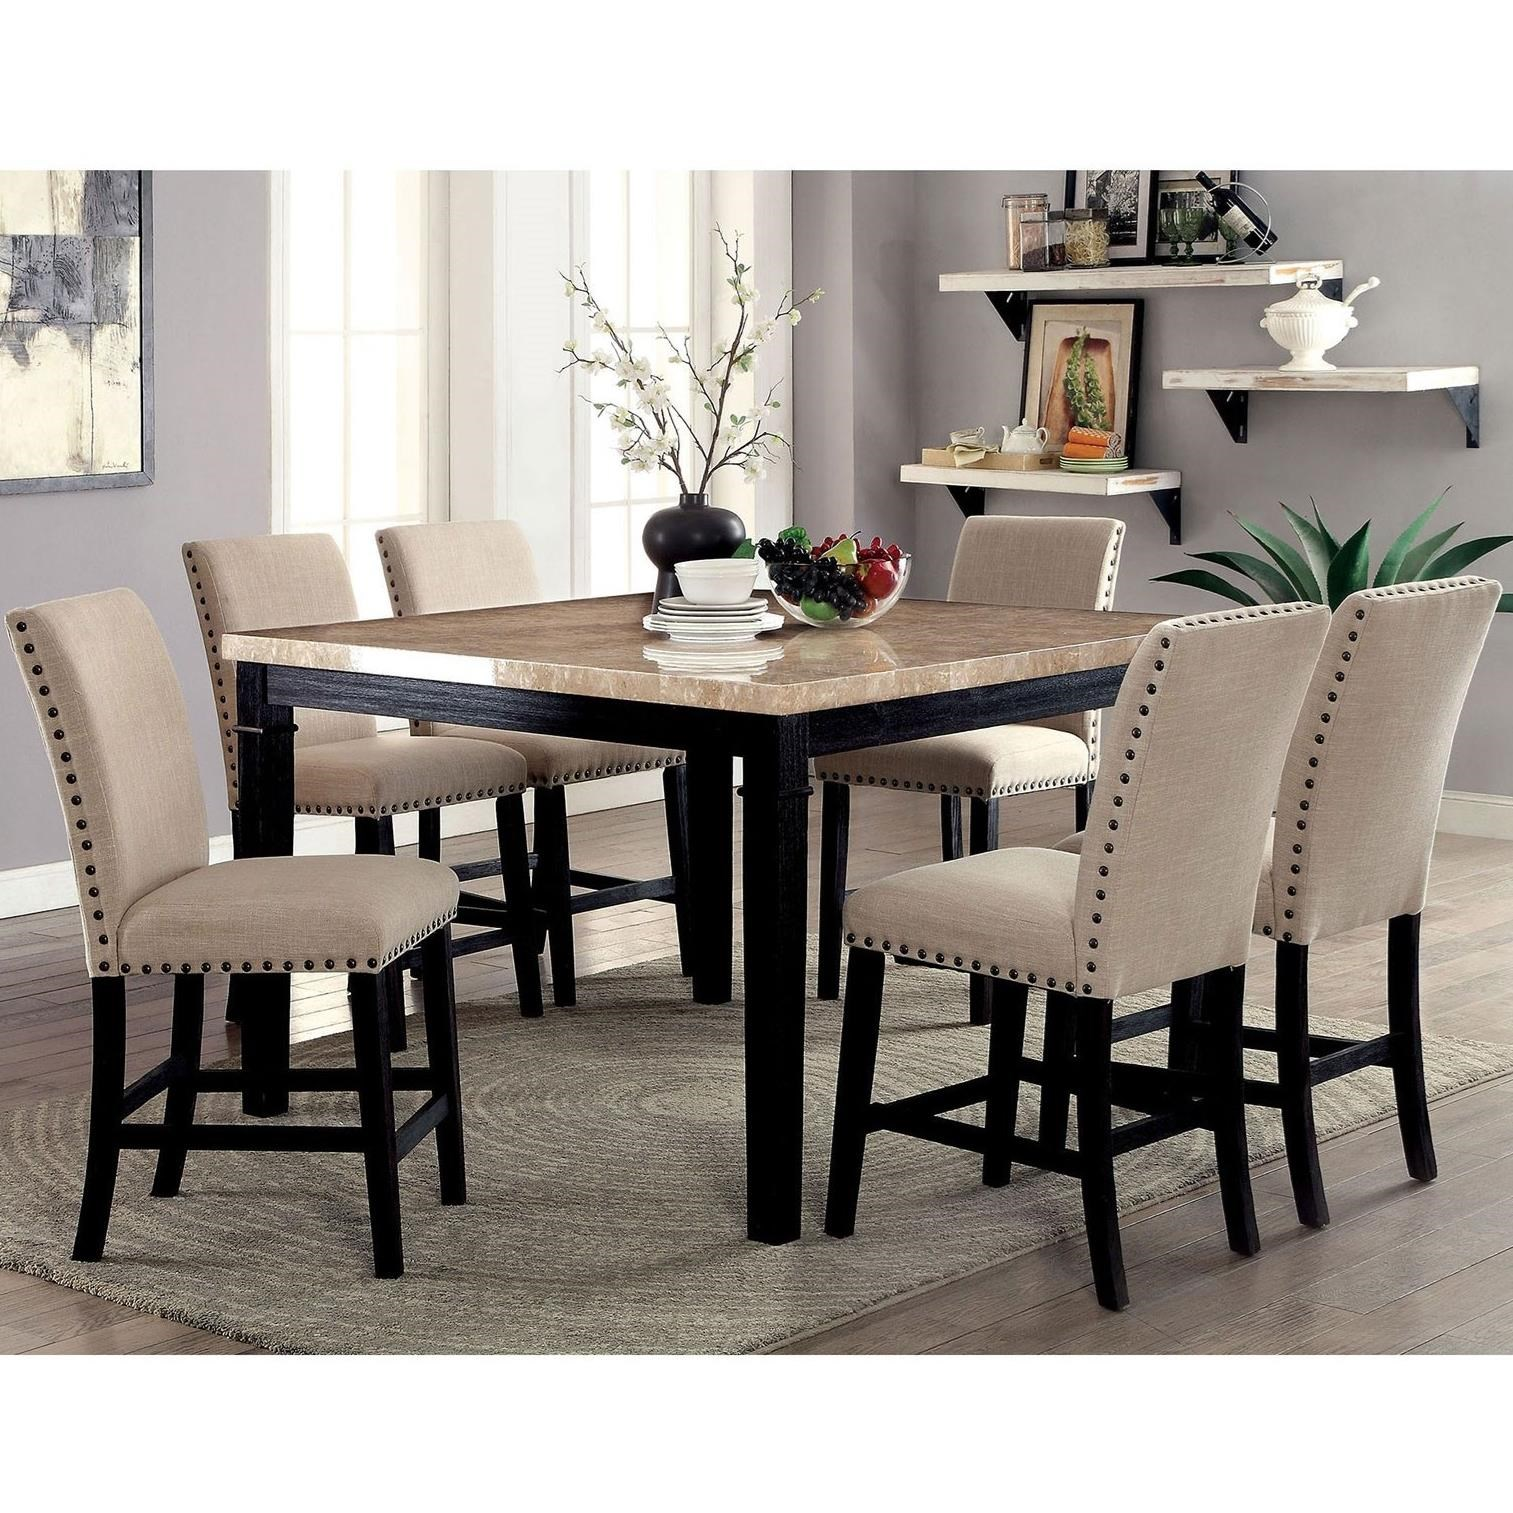 Furniture Of America Dodson Counter Height Table And Stool Set